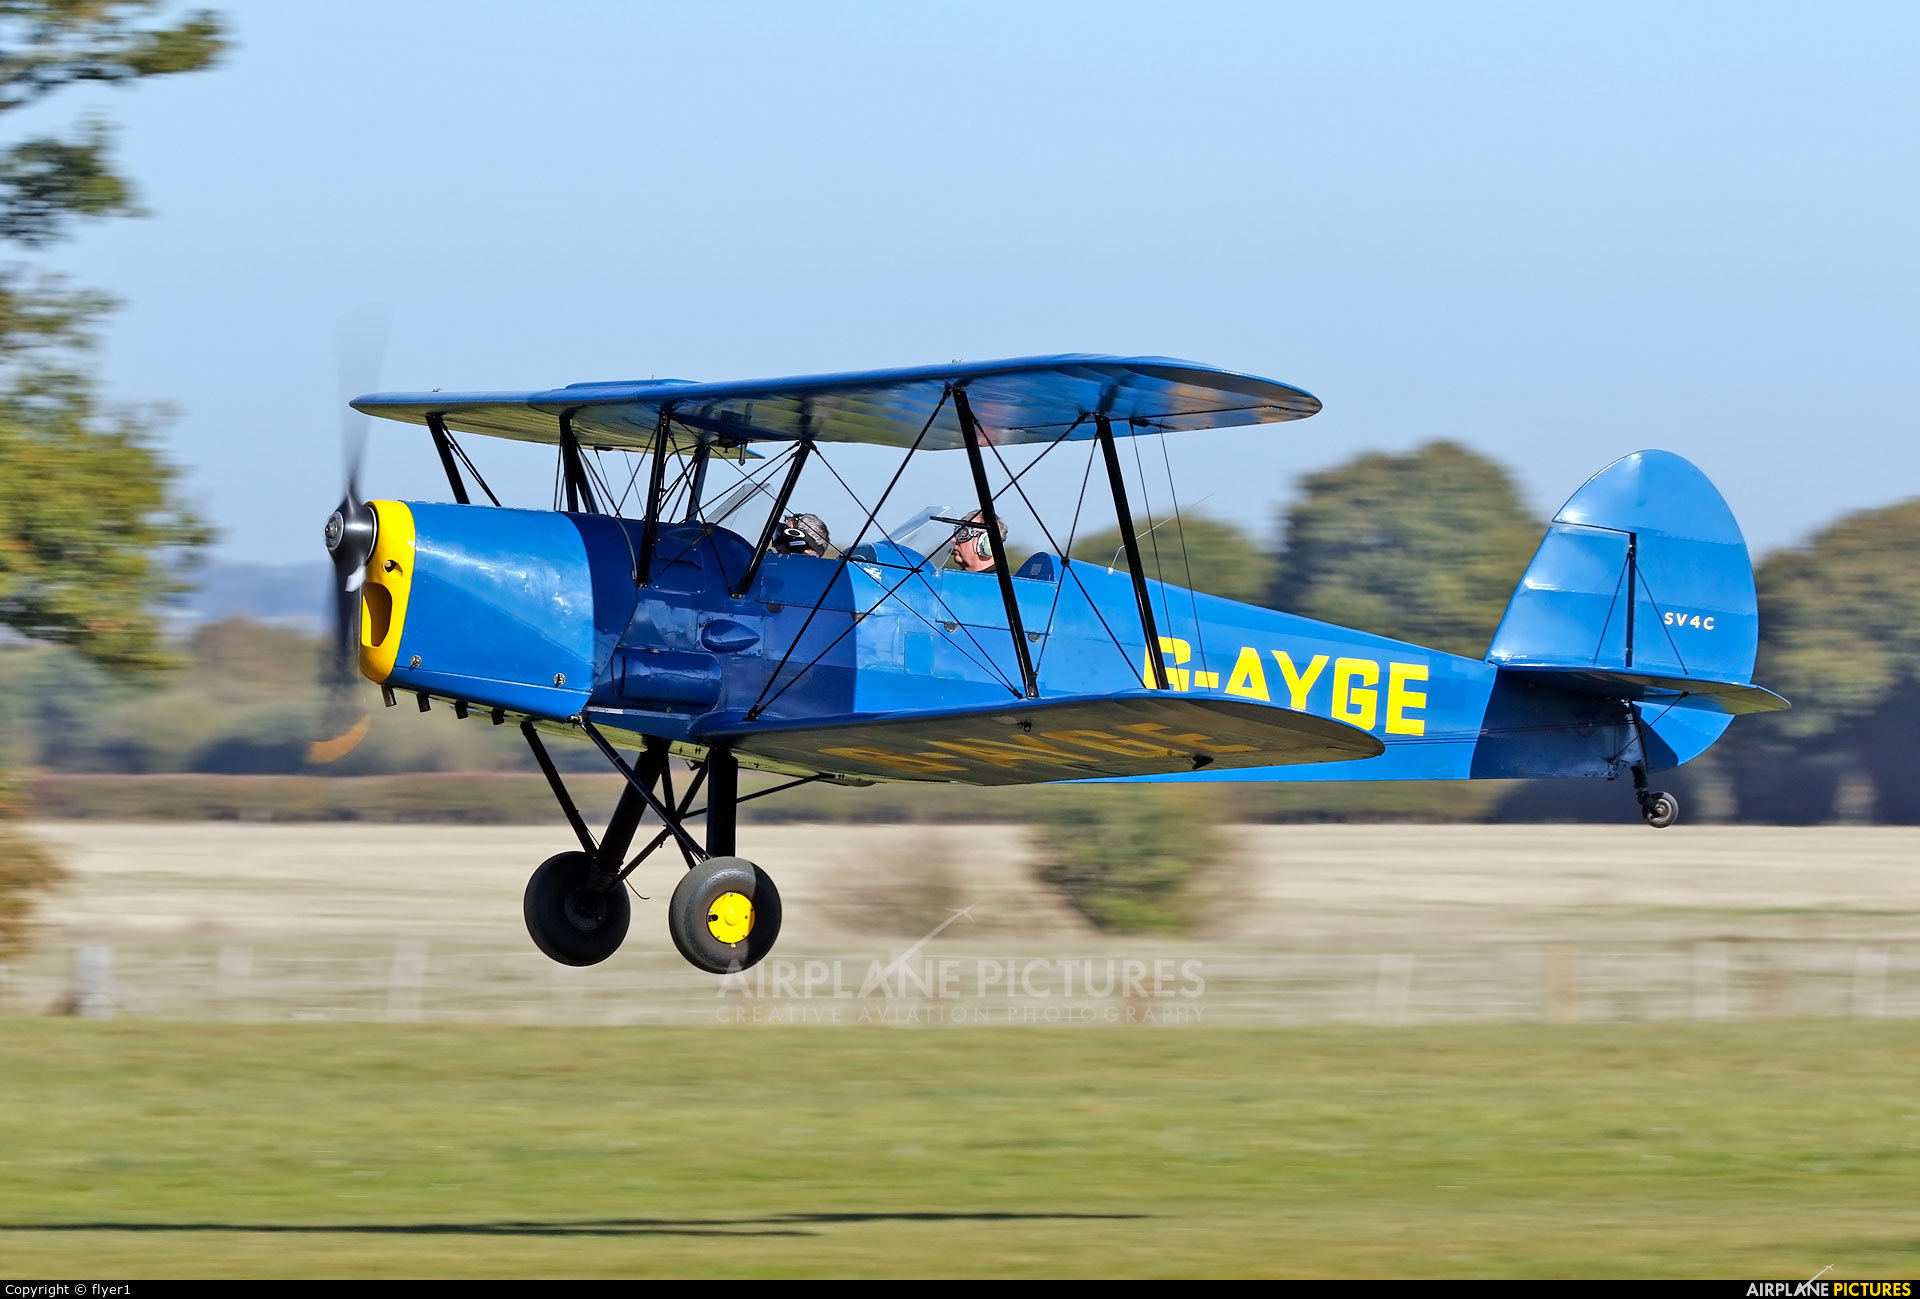 Private G-AYGE aircraft at Lashenden / Headcorn